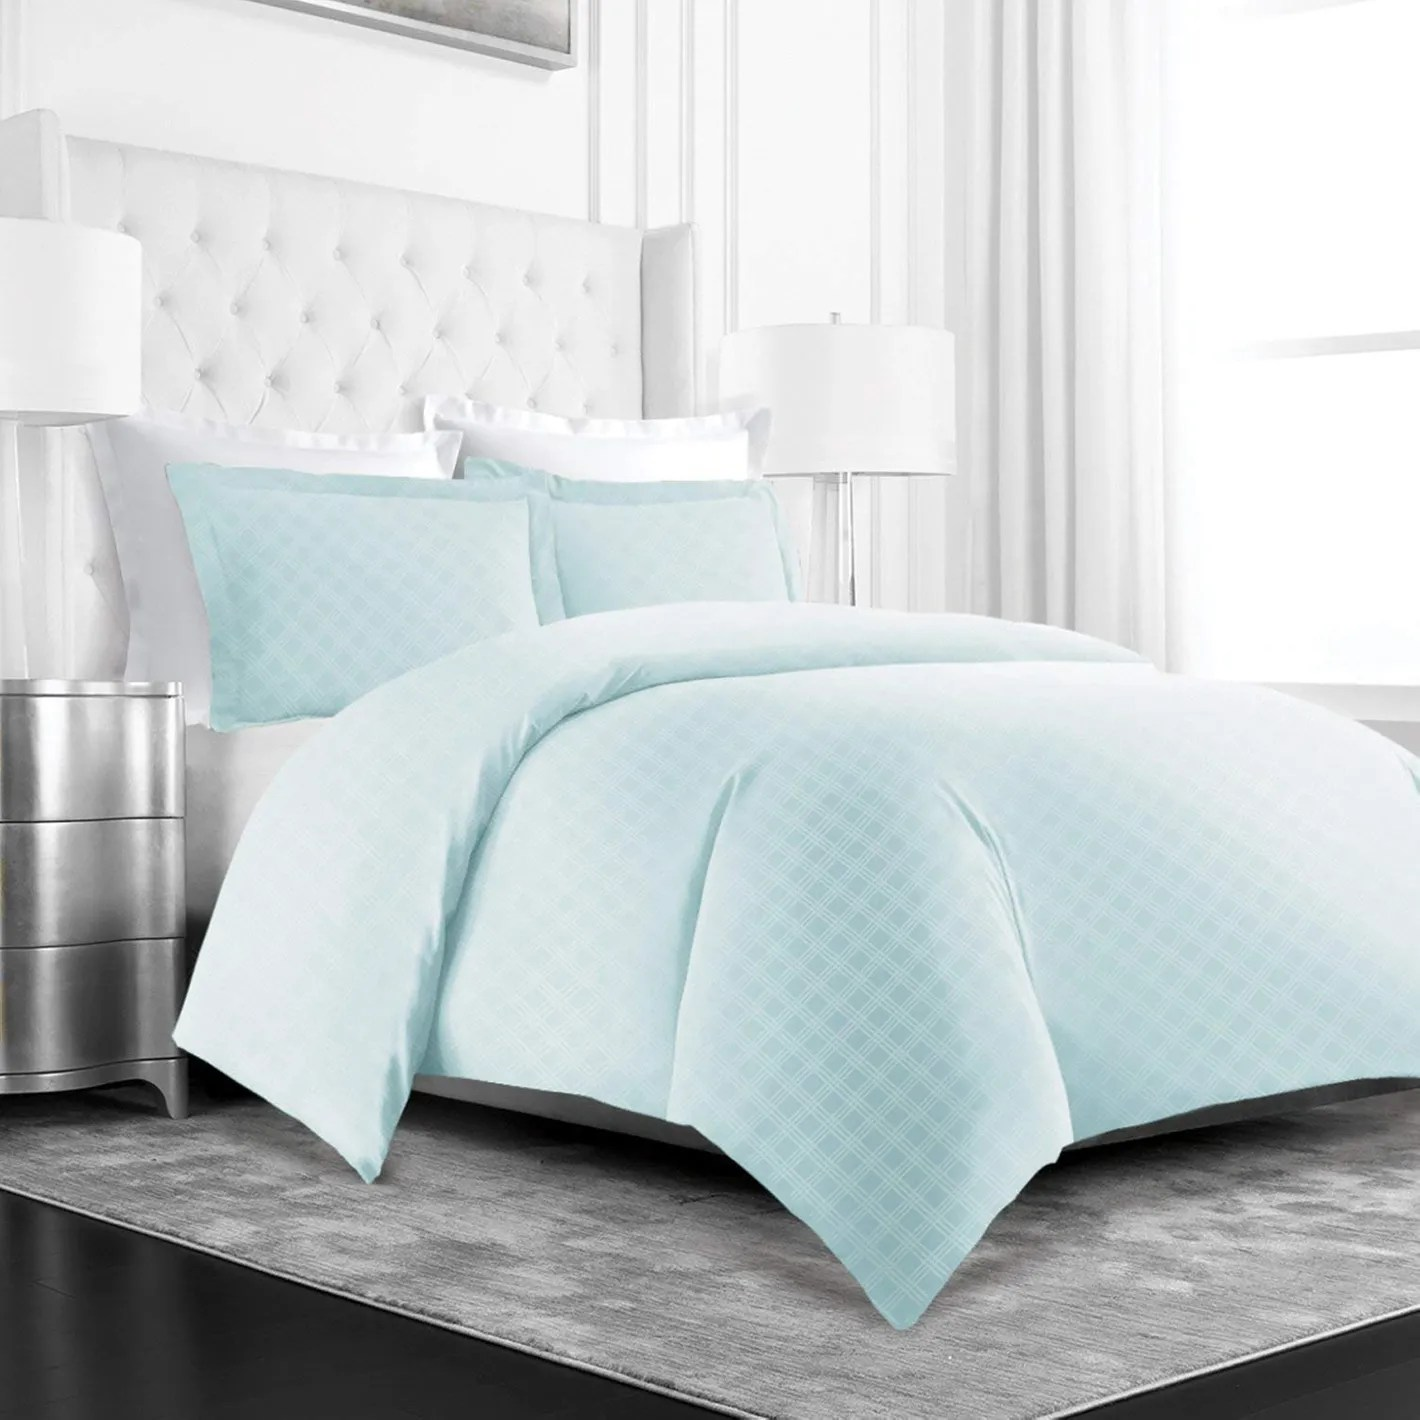 Soft Duvet Covers Beckham Hotel Collection Luxury Soft Brushed Microfiber Duvet Cover Set With Embossed Diamond Pattern